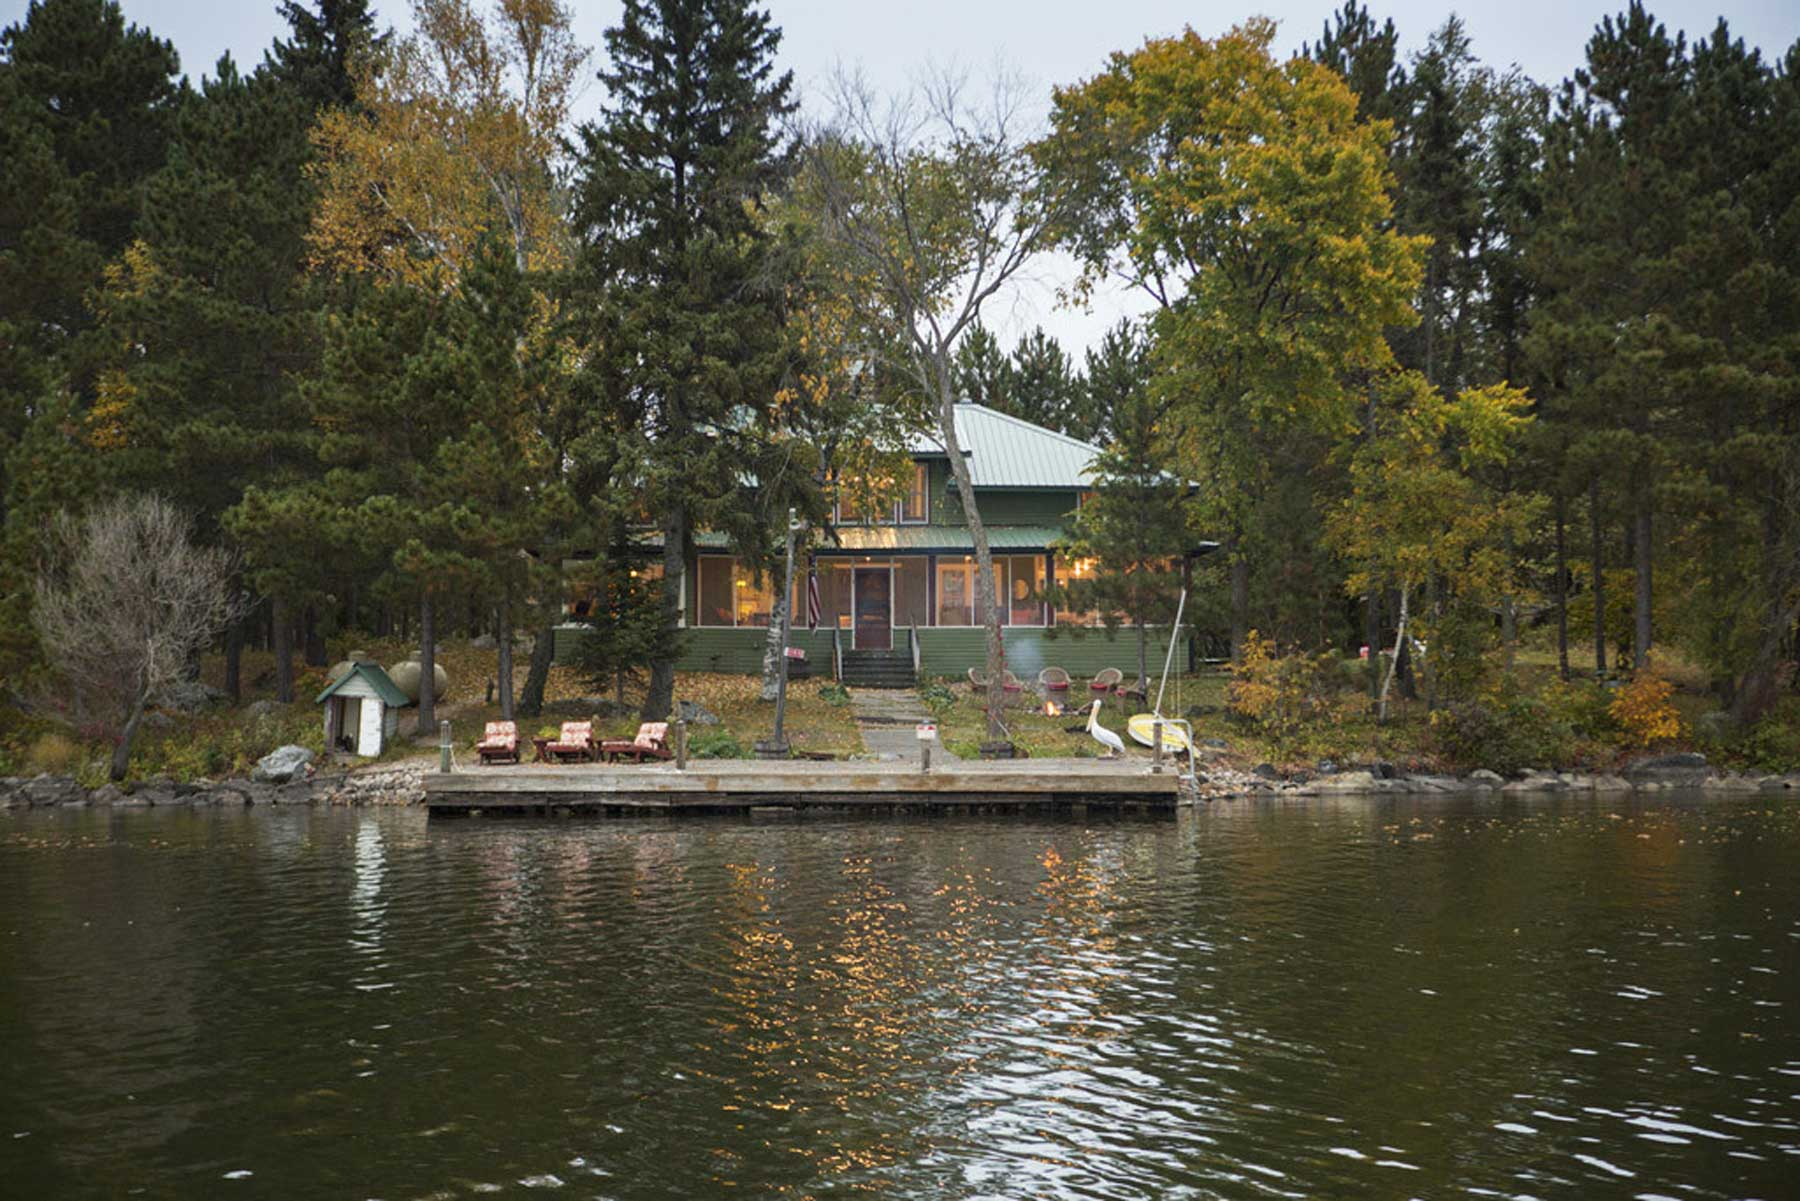 A private island cabin tucked away off a body of water with a deck